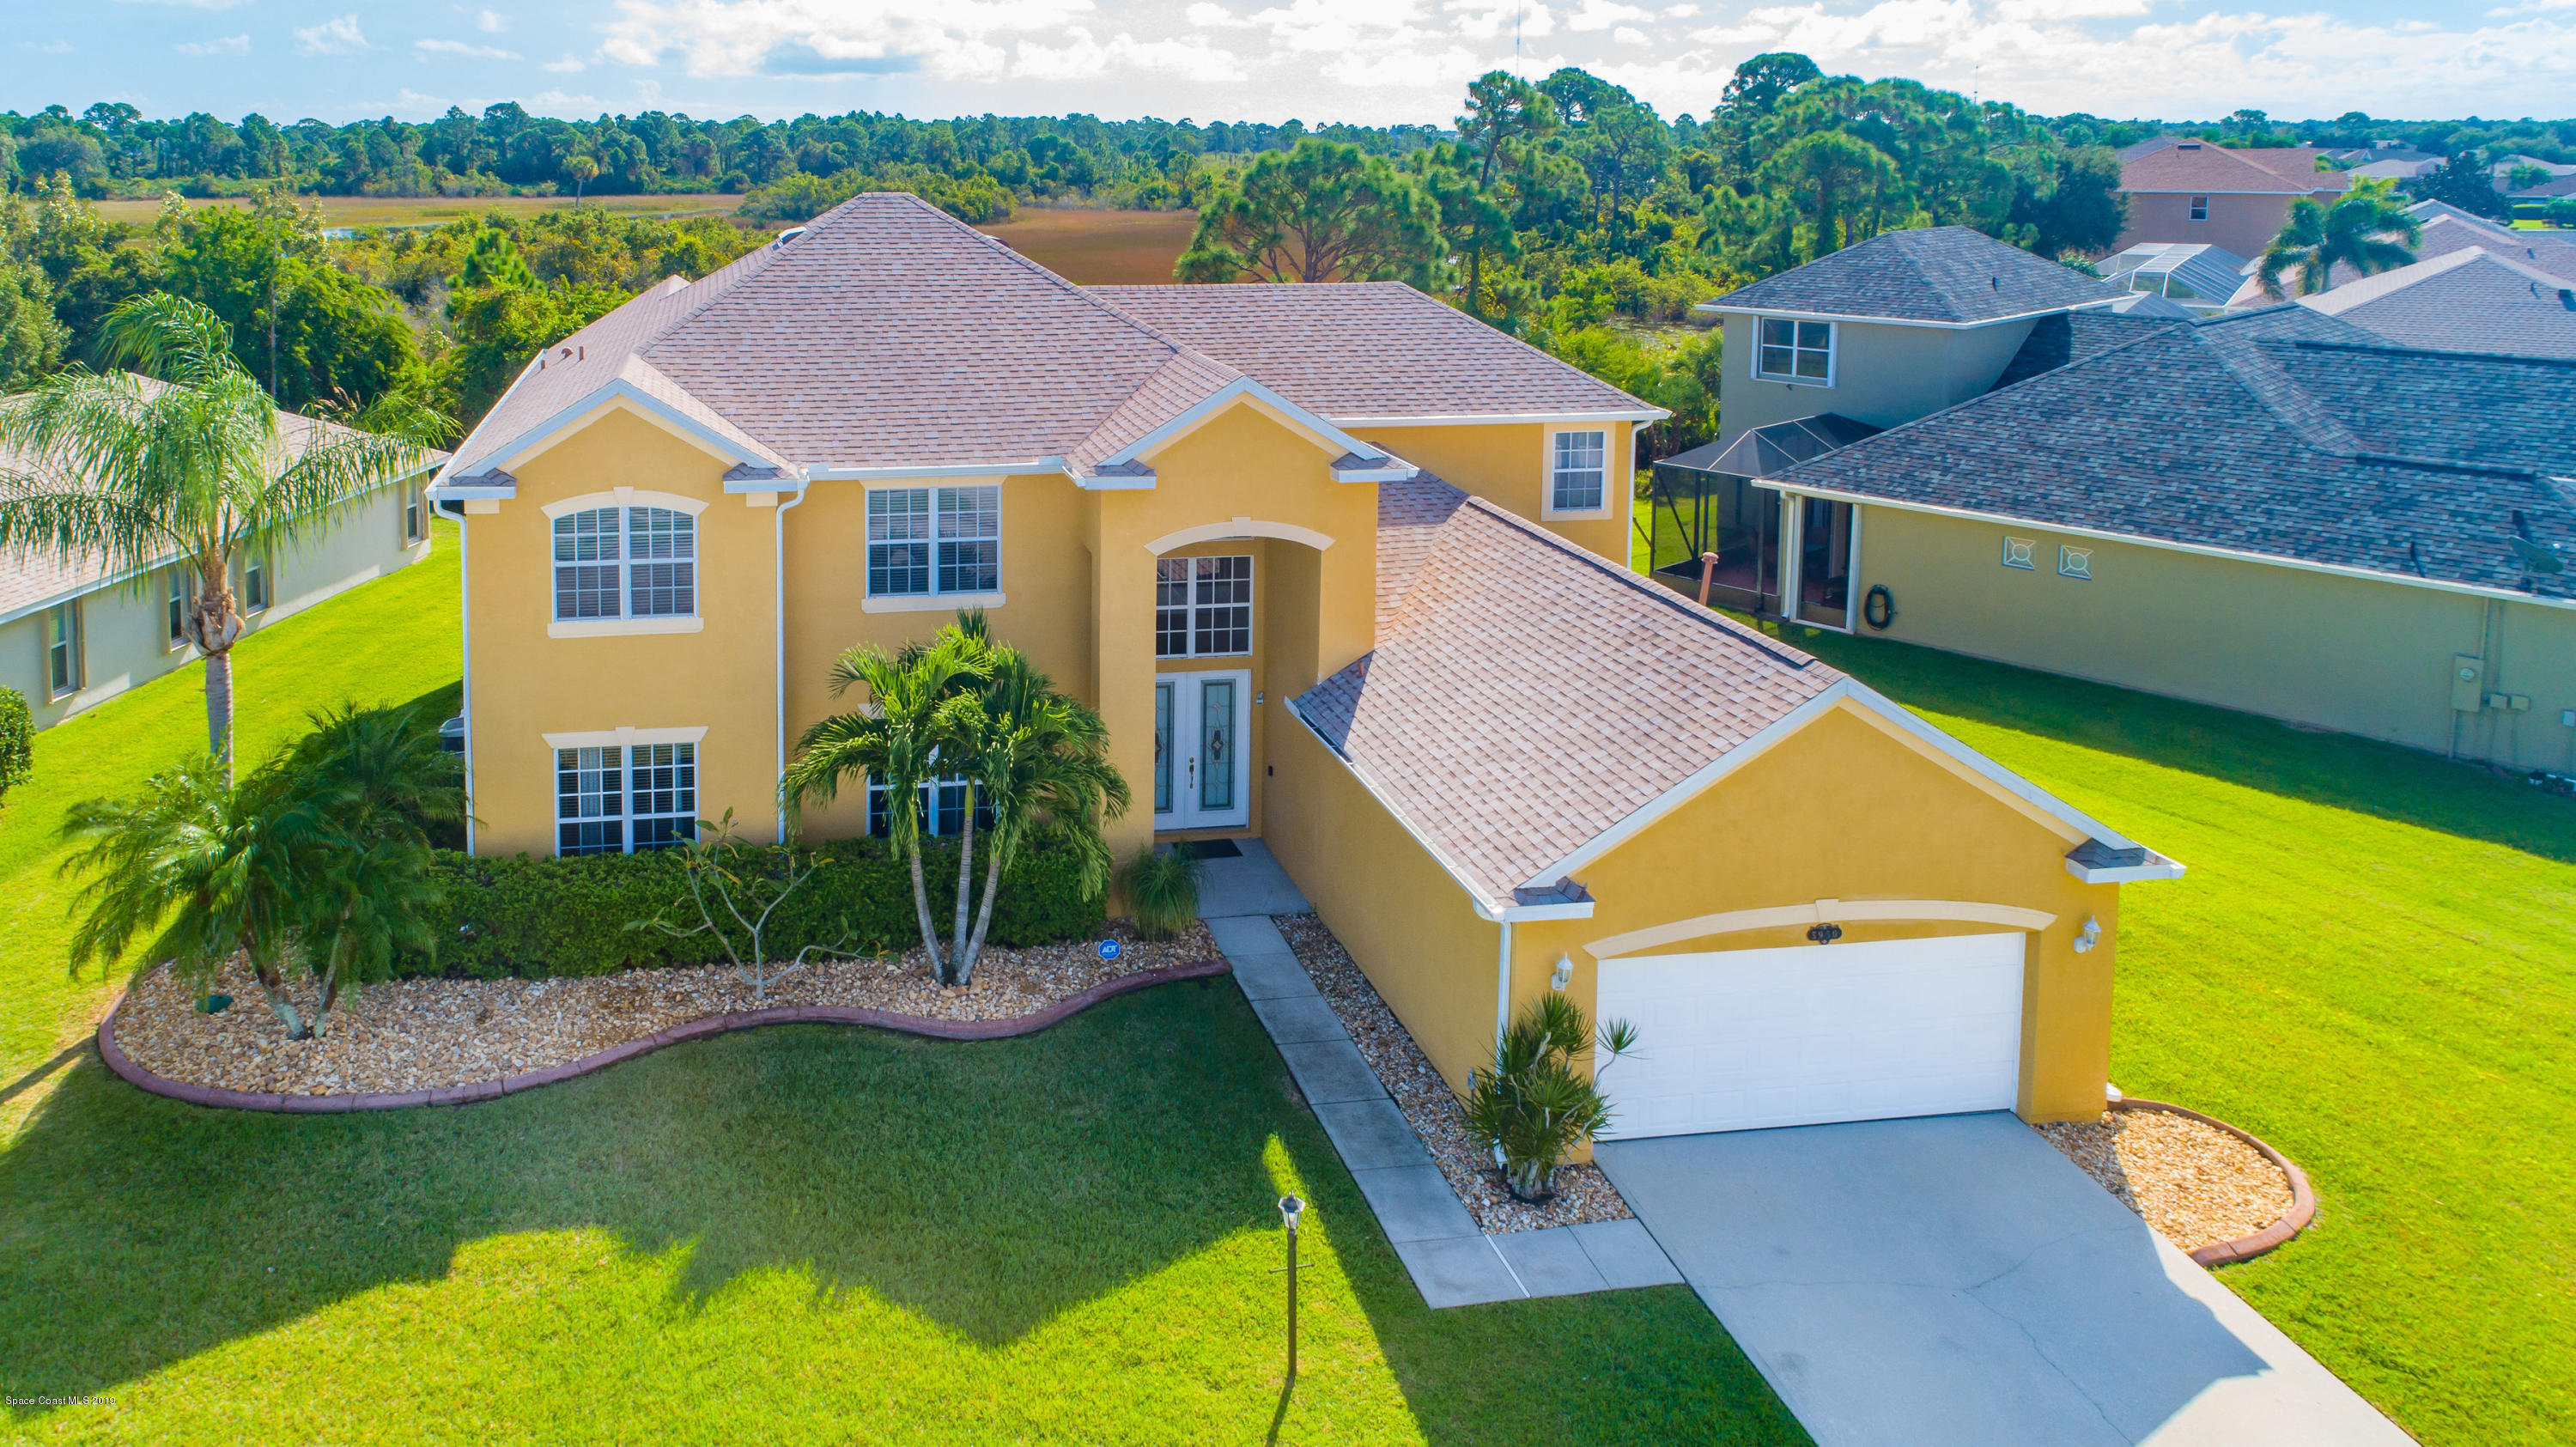 Single Family Homes for Sale at 3950 Waterford Rockledge, Florida 32955 United States